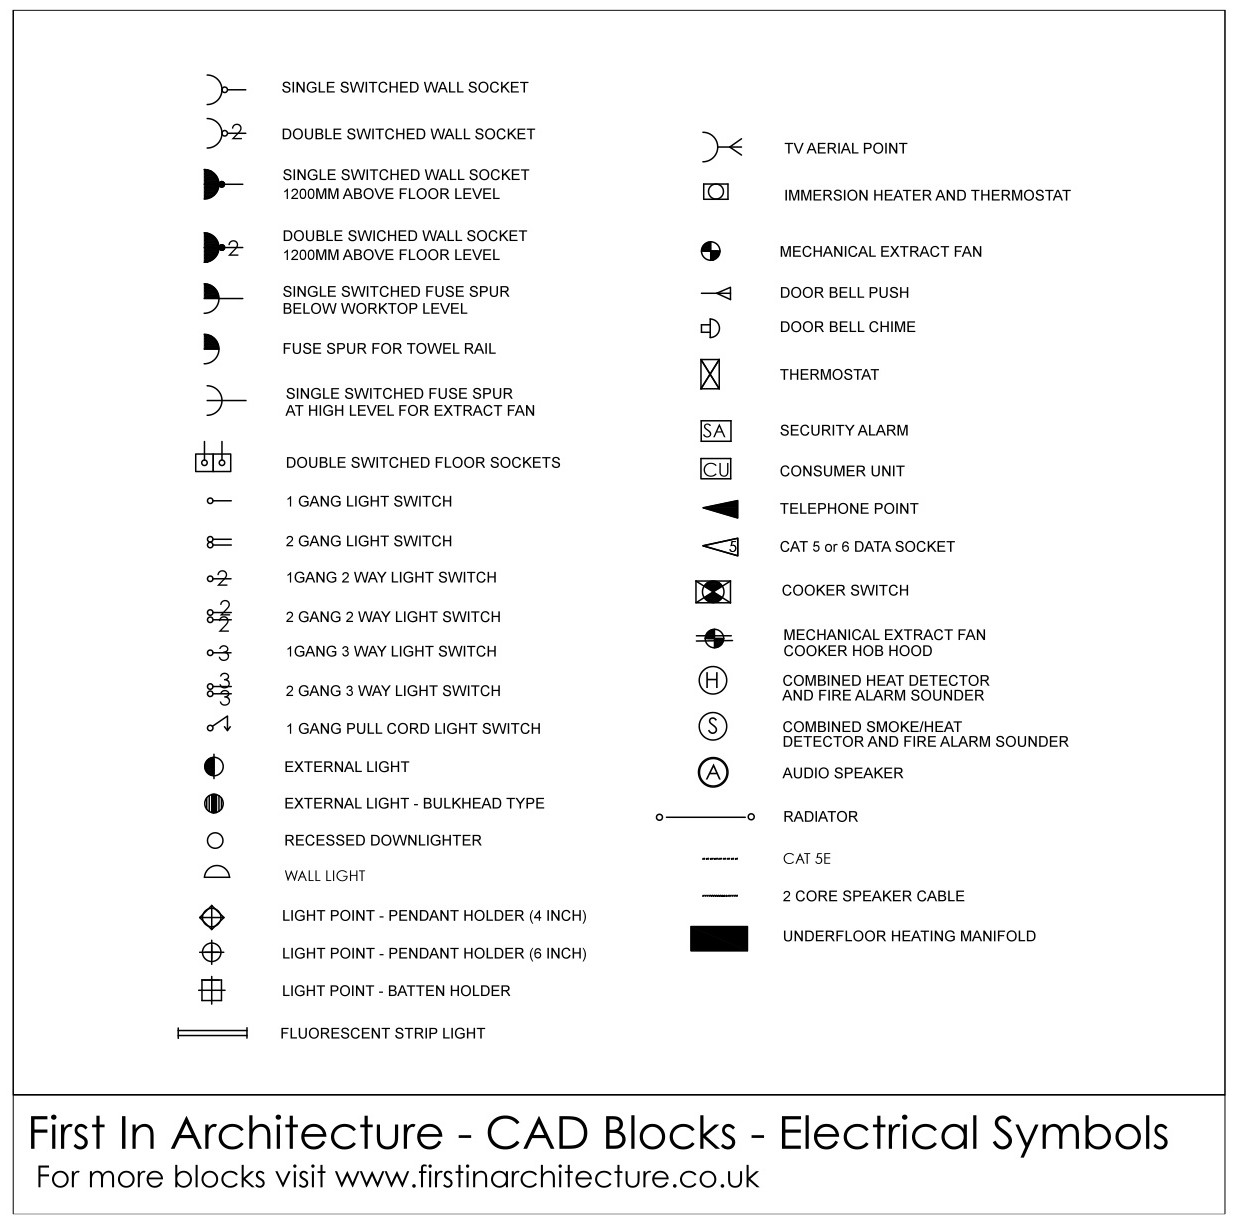 Free Cad Blocks Electrical Symbols Wiring A Plug Socket From Another Download 01